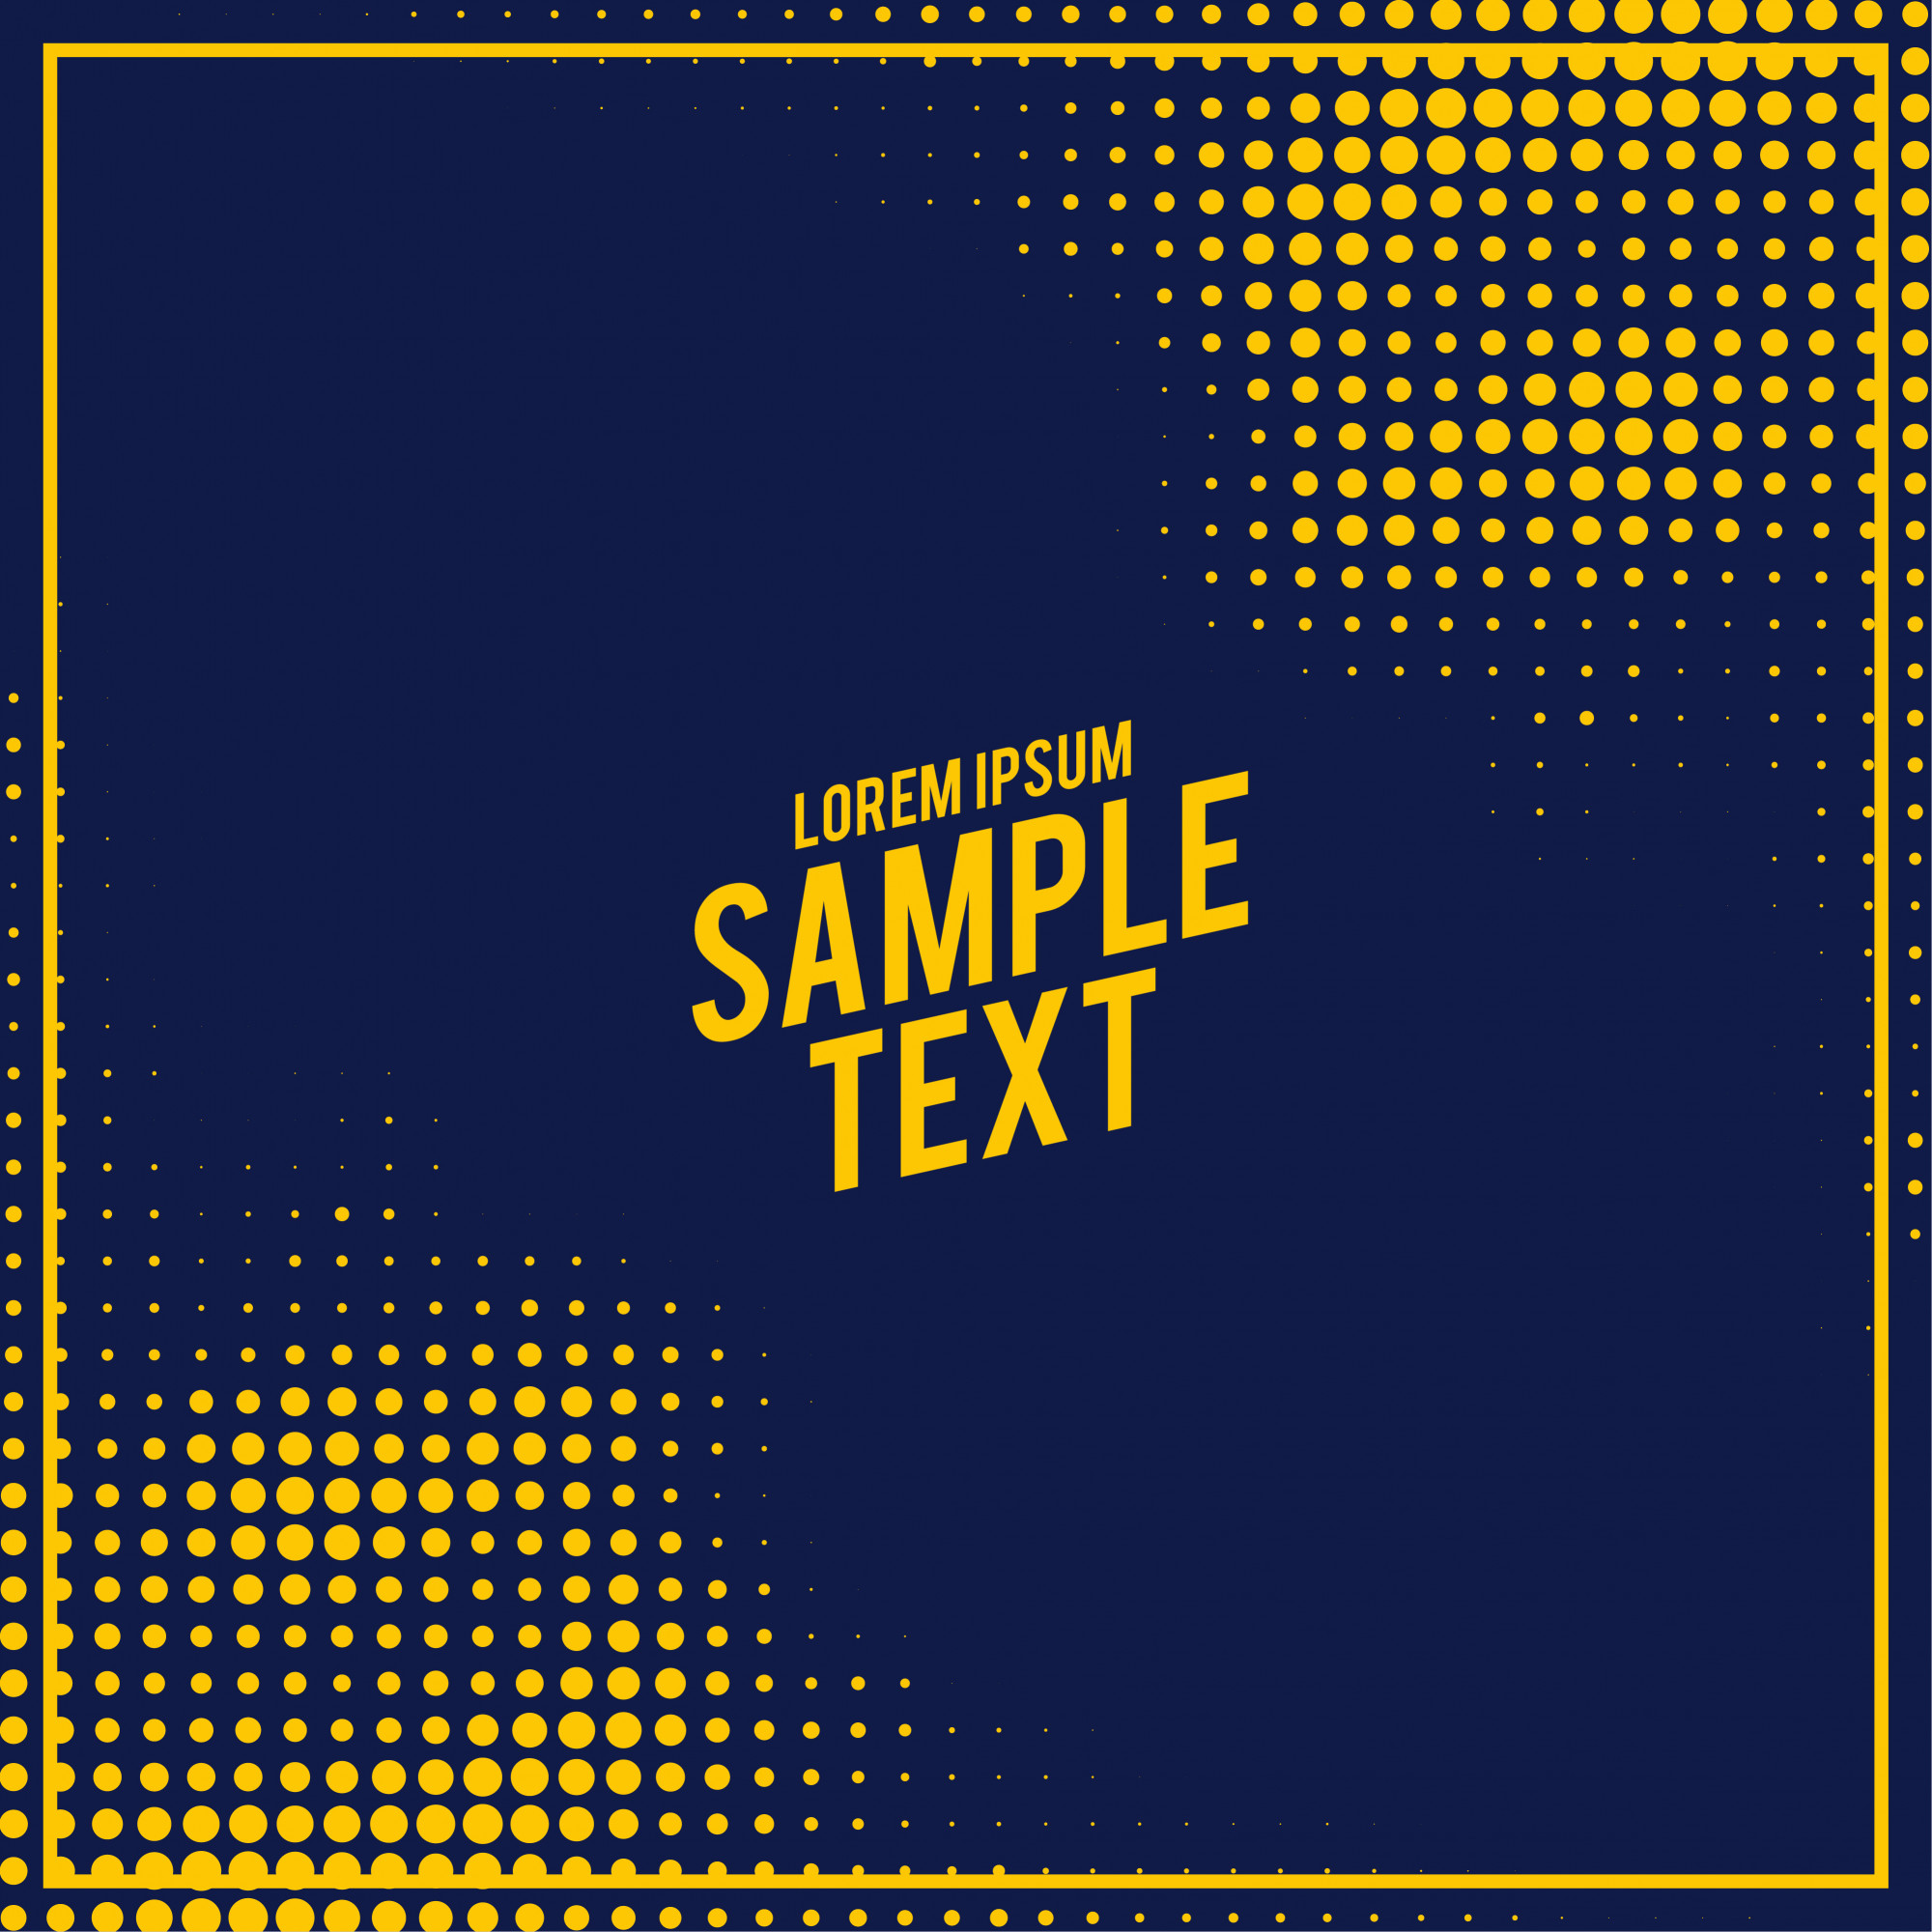 Abstract blue and yellow halftone pattern